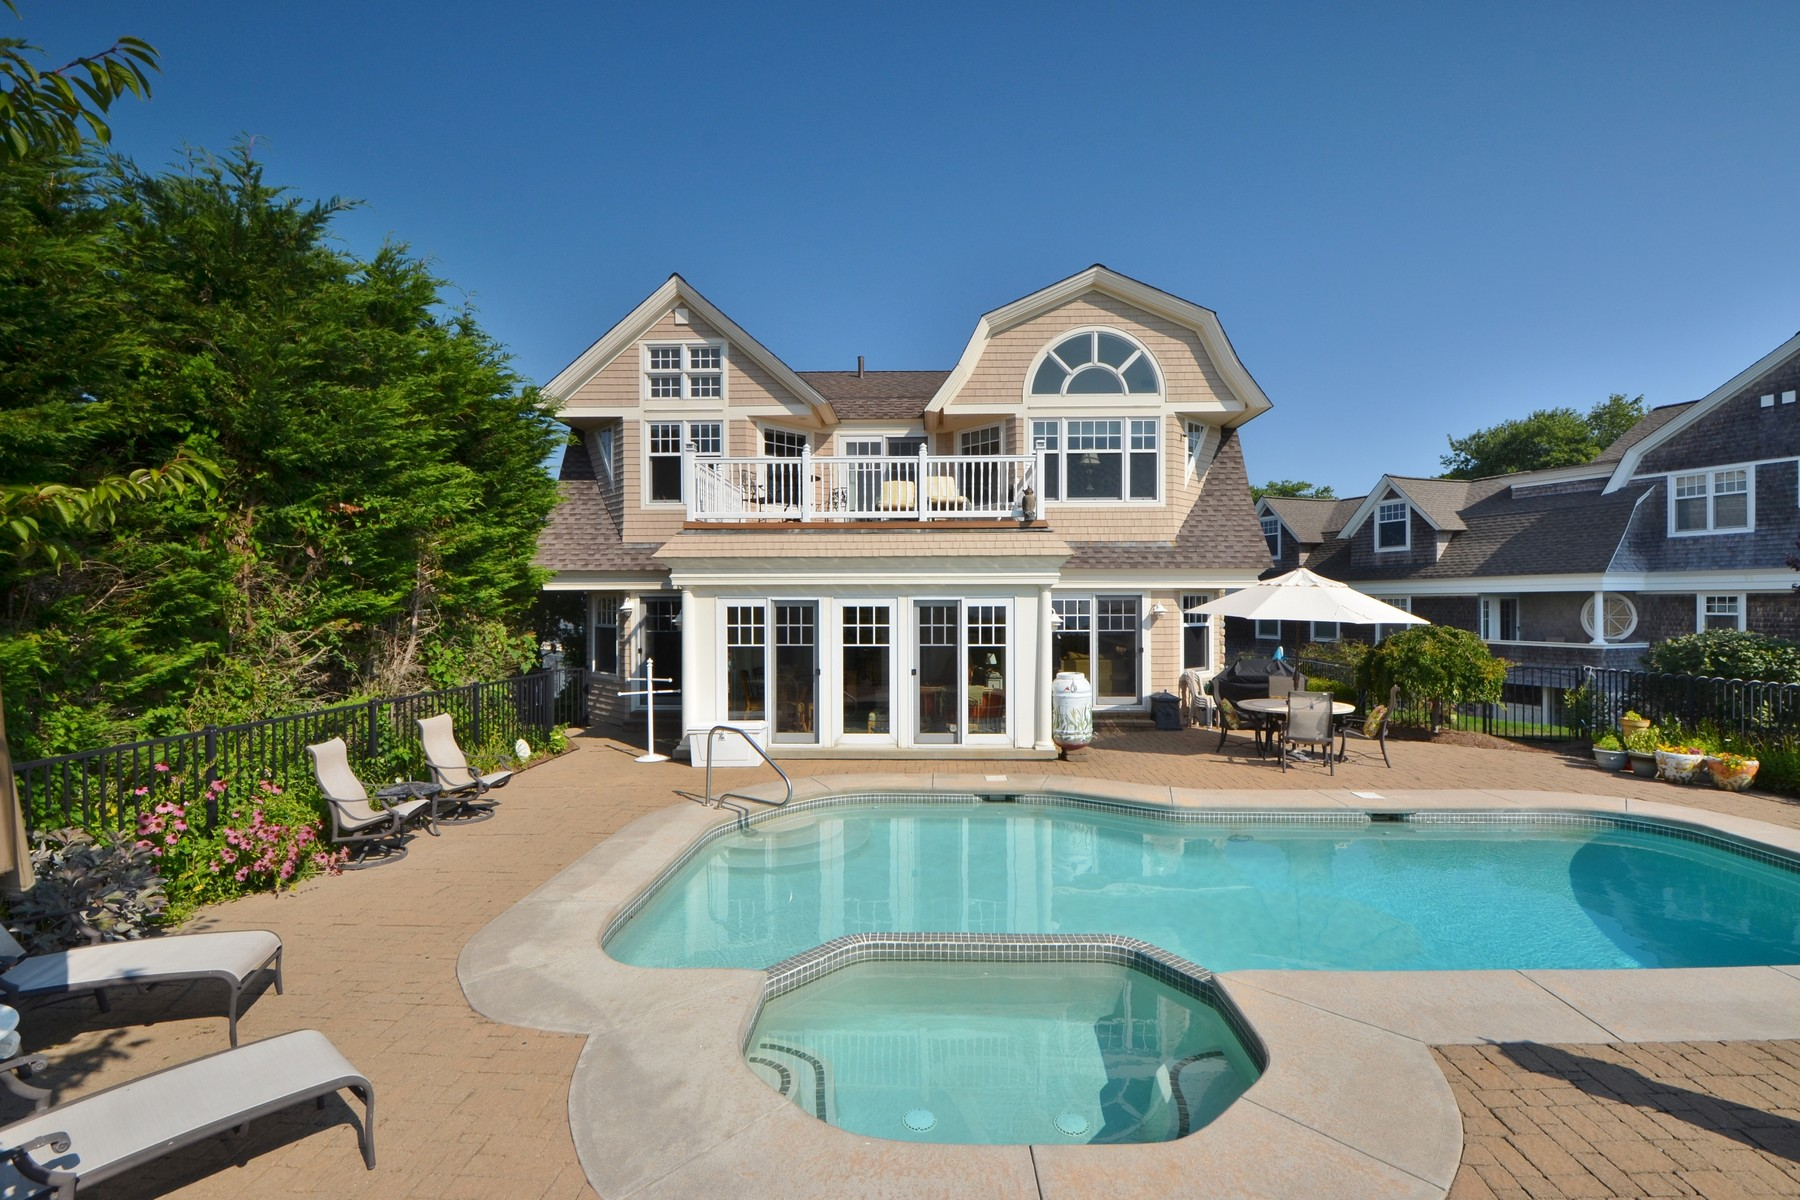 Maison unifamiliale pour l Vente à Direct Waterfront Home Overlooks Long Island Sound 10 Billow Rd Old Saybrook, Connecticut, 06475 États-Unis